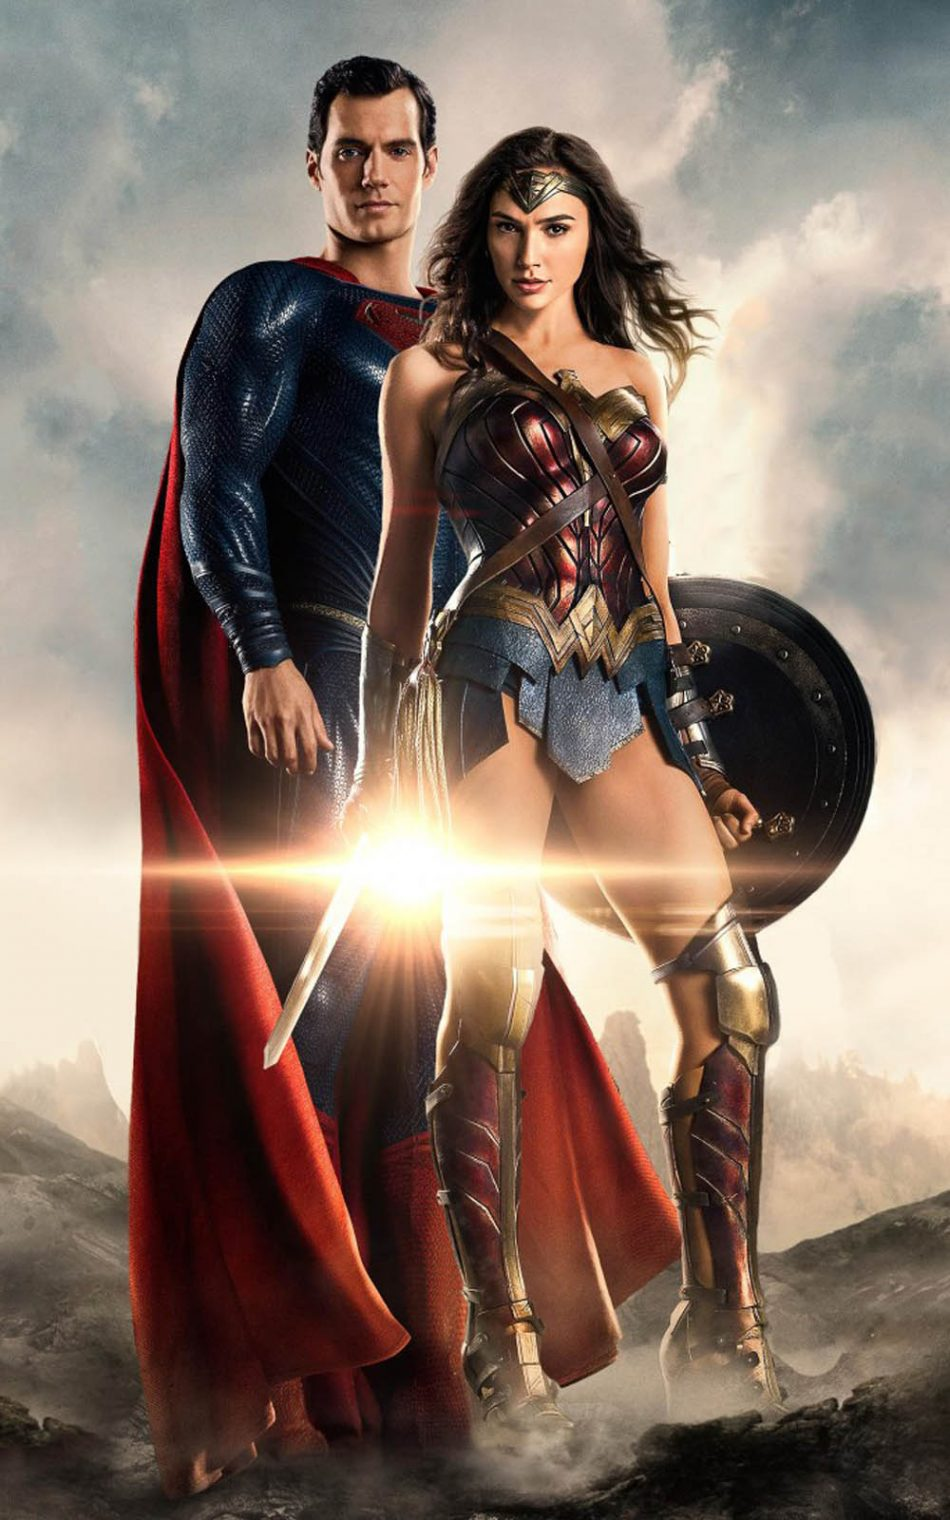 Superman-And-Wonder-Woman-In-Justice-League-HD-Mobile-Wallpaper-950x1520.jpg